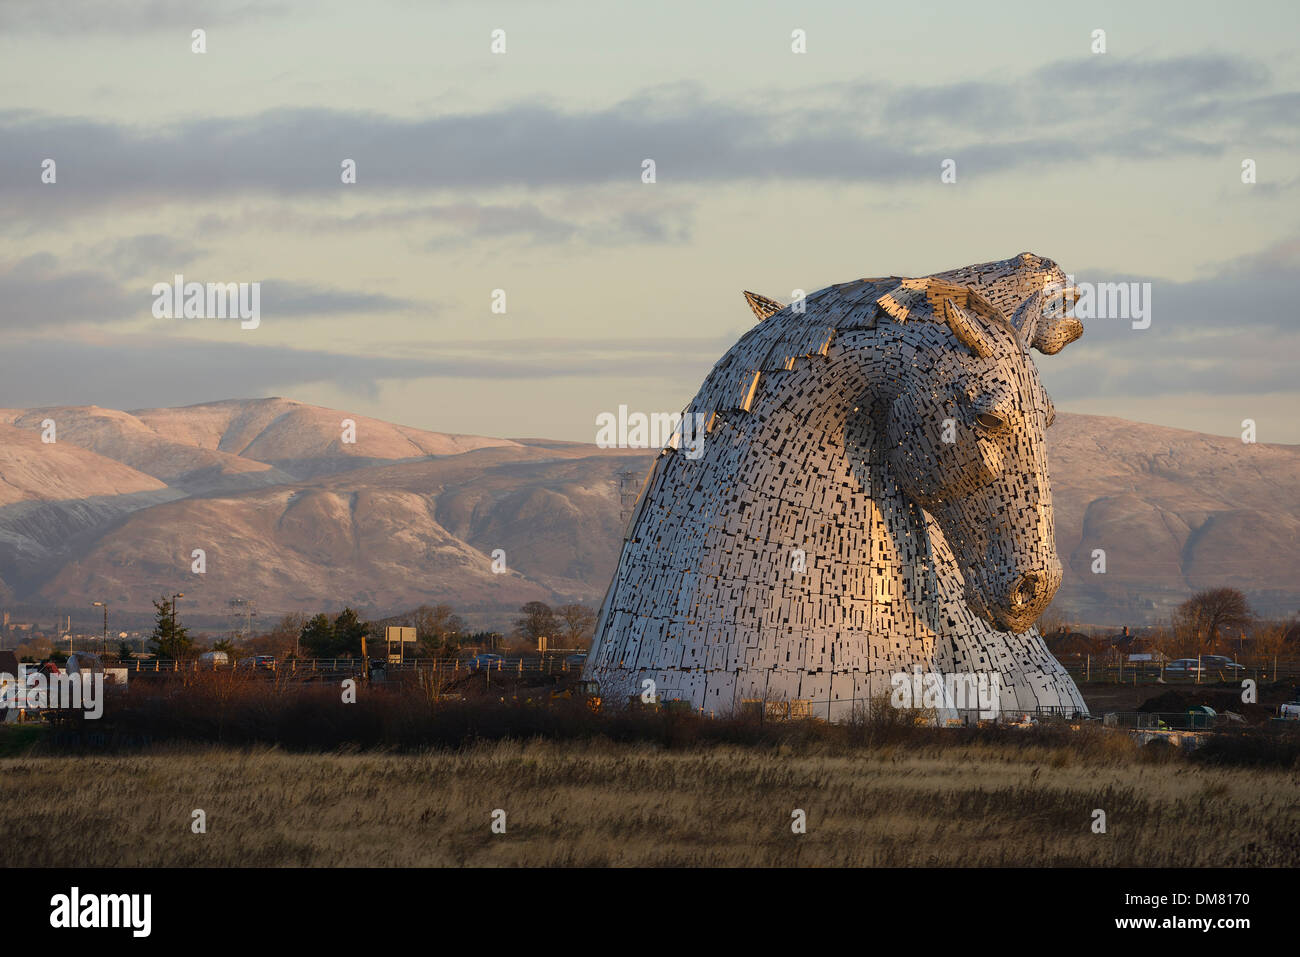 The Kelpies sculpture of two horses at The Helix Park in Falkirk Scotland - Stock Image